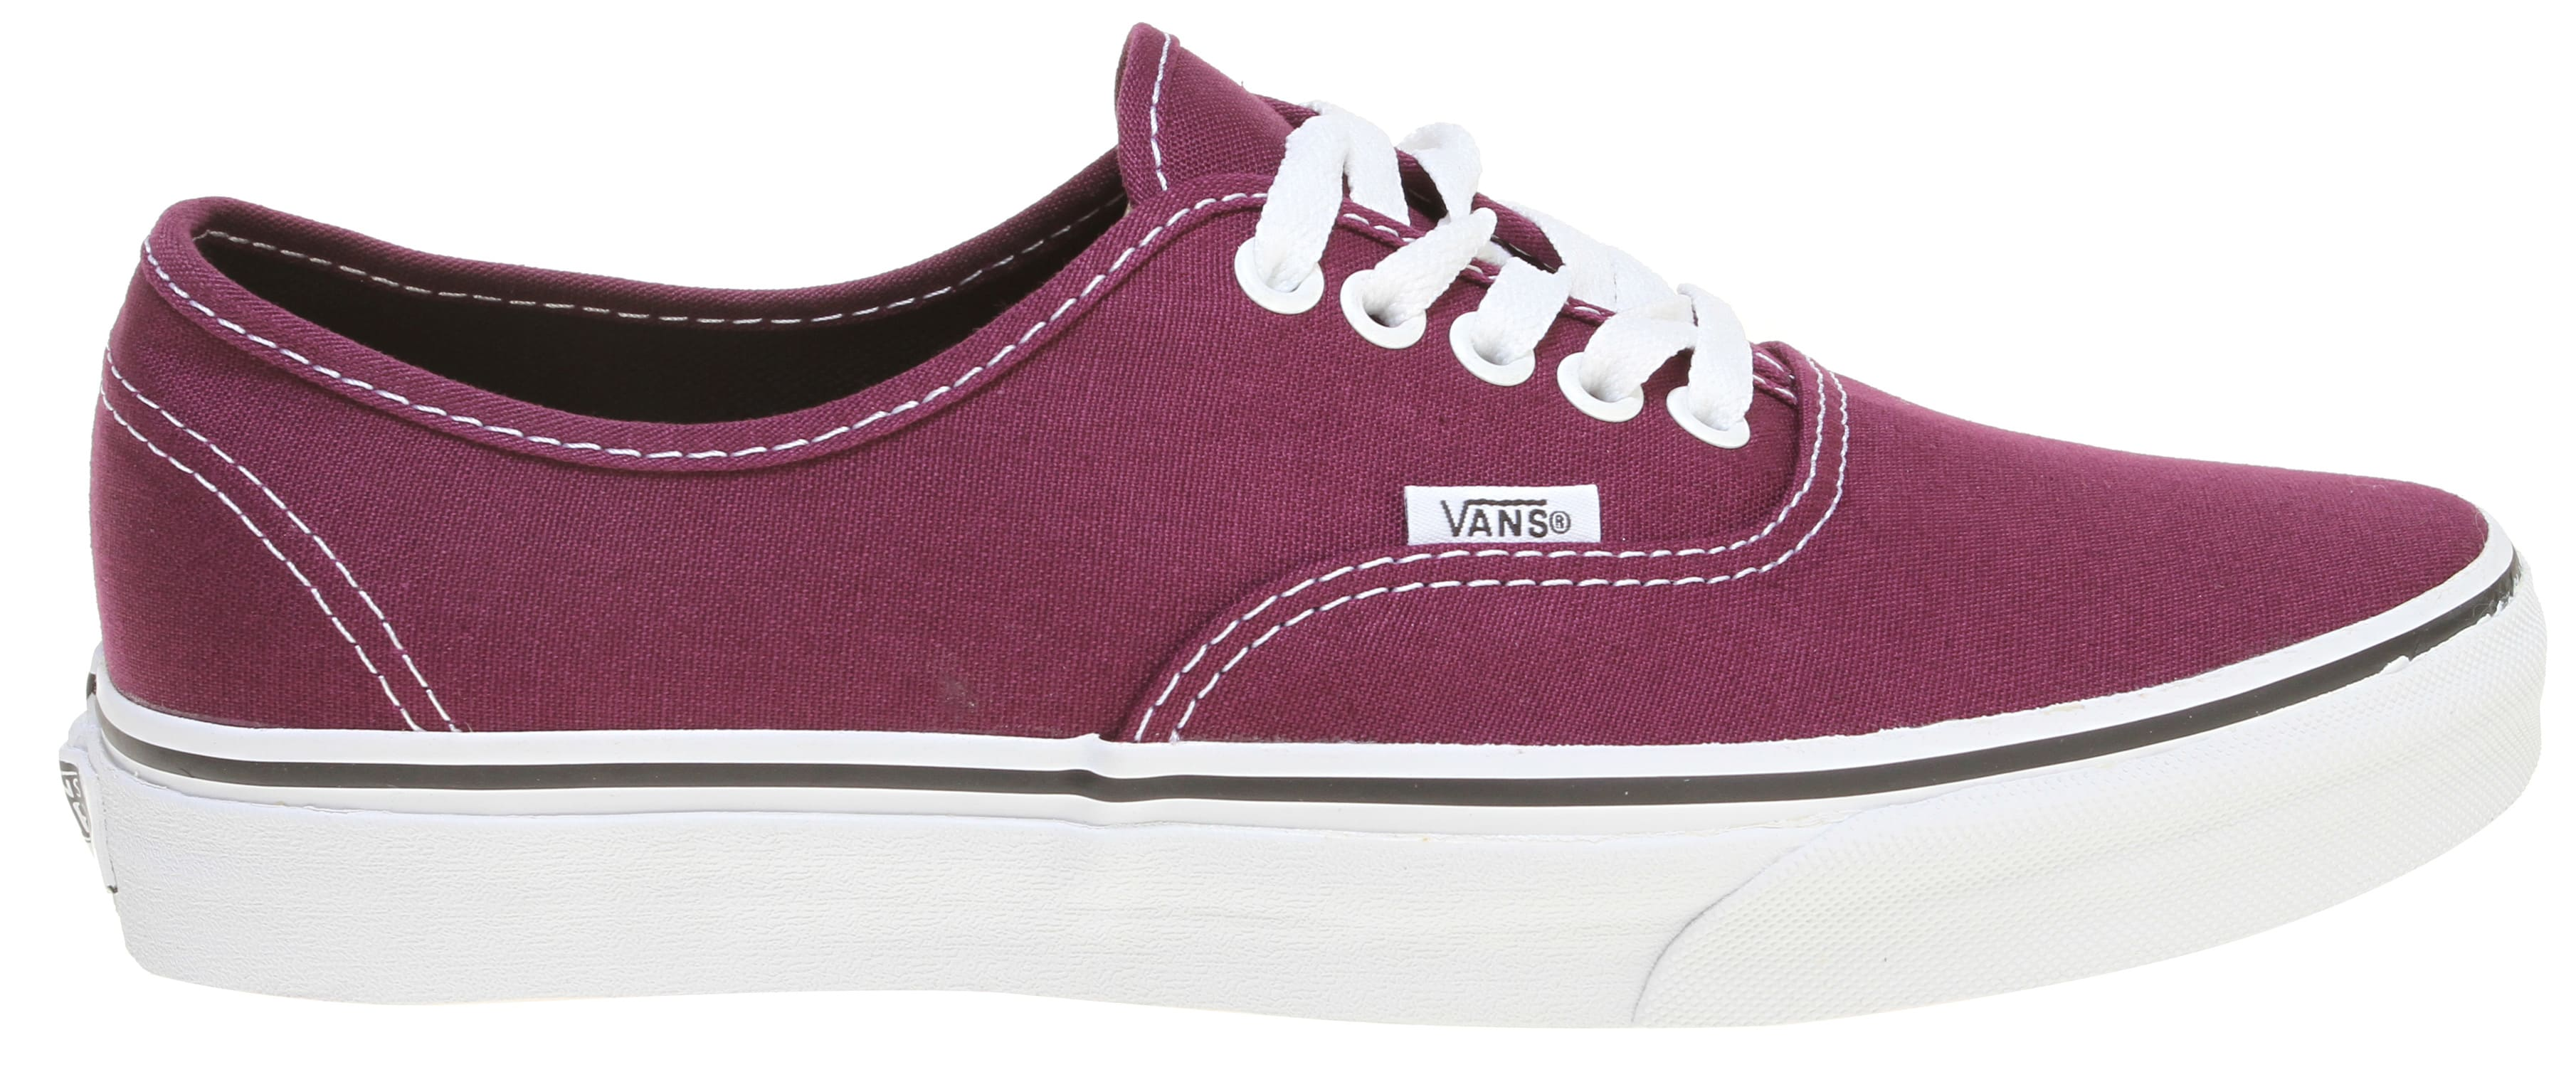 On Sale Vans Authentic Shoes Potent Purple/Black Womens 7 Footwear